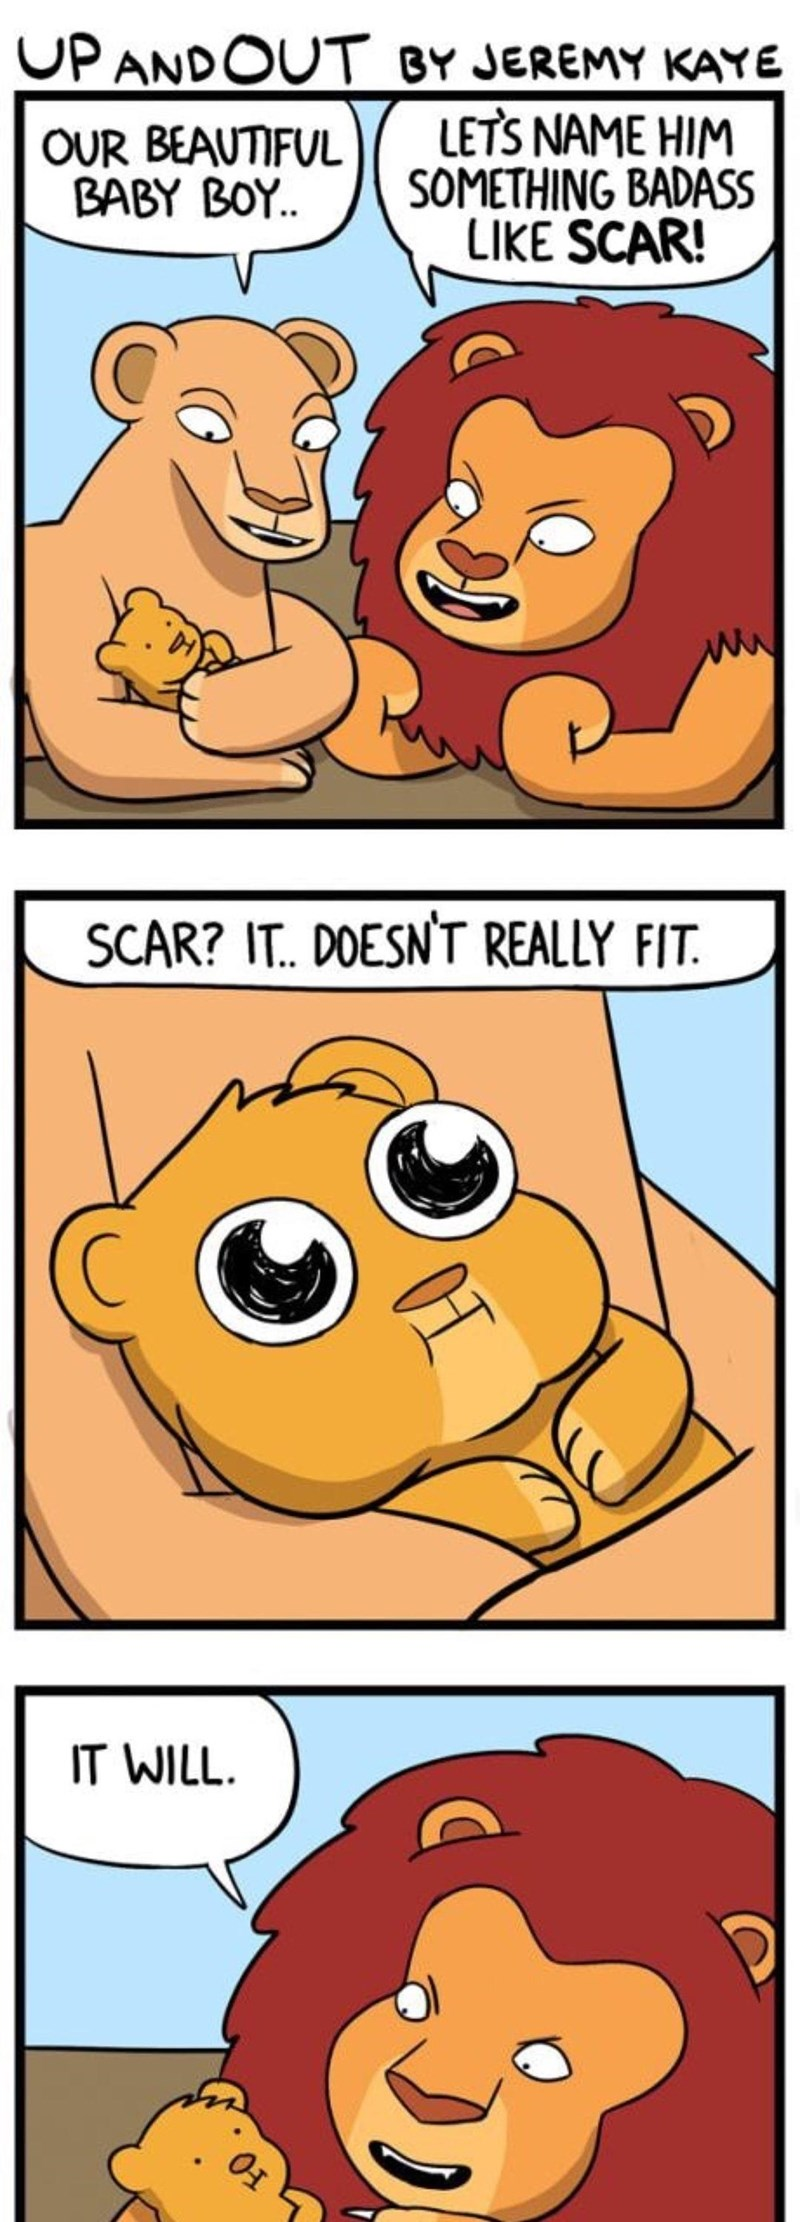 comic of fake origin story explaining how Scar from The Lion King got his name